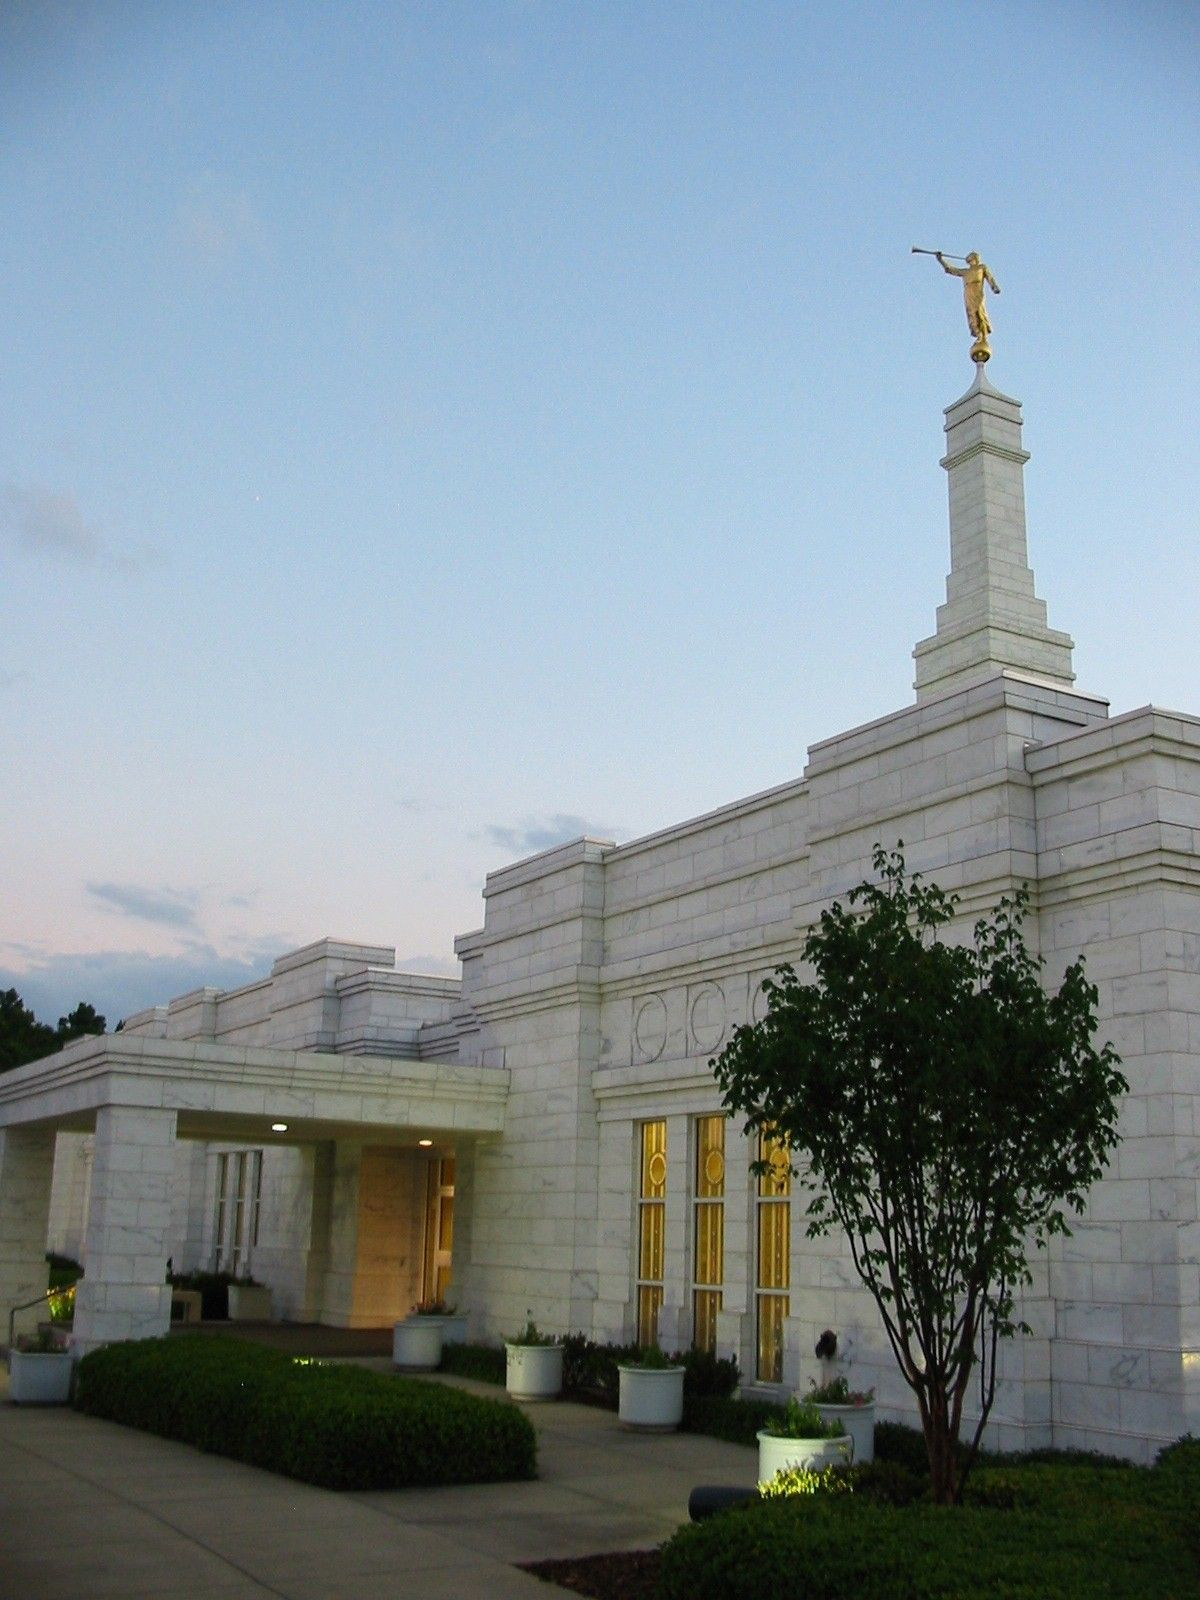 The entrance to the Birmingham Alabama Temple is lit up in the evening.